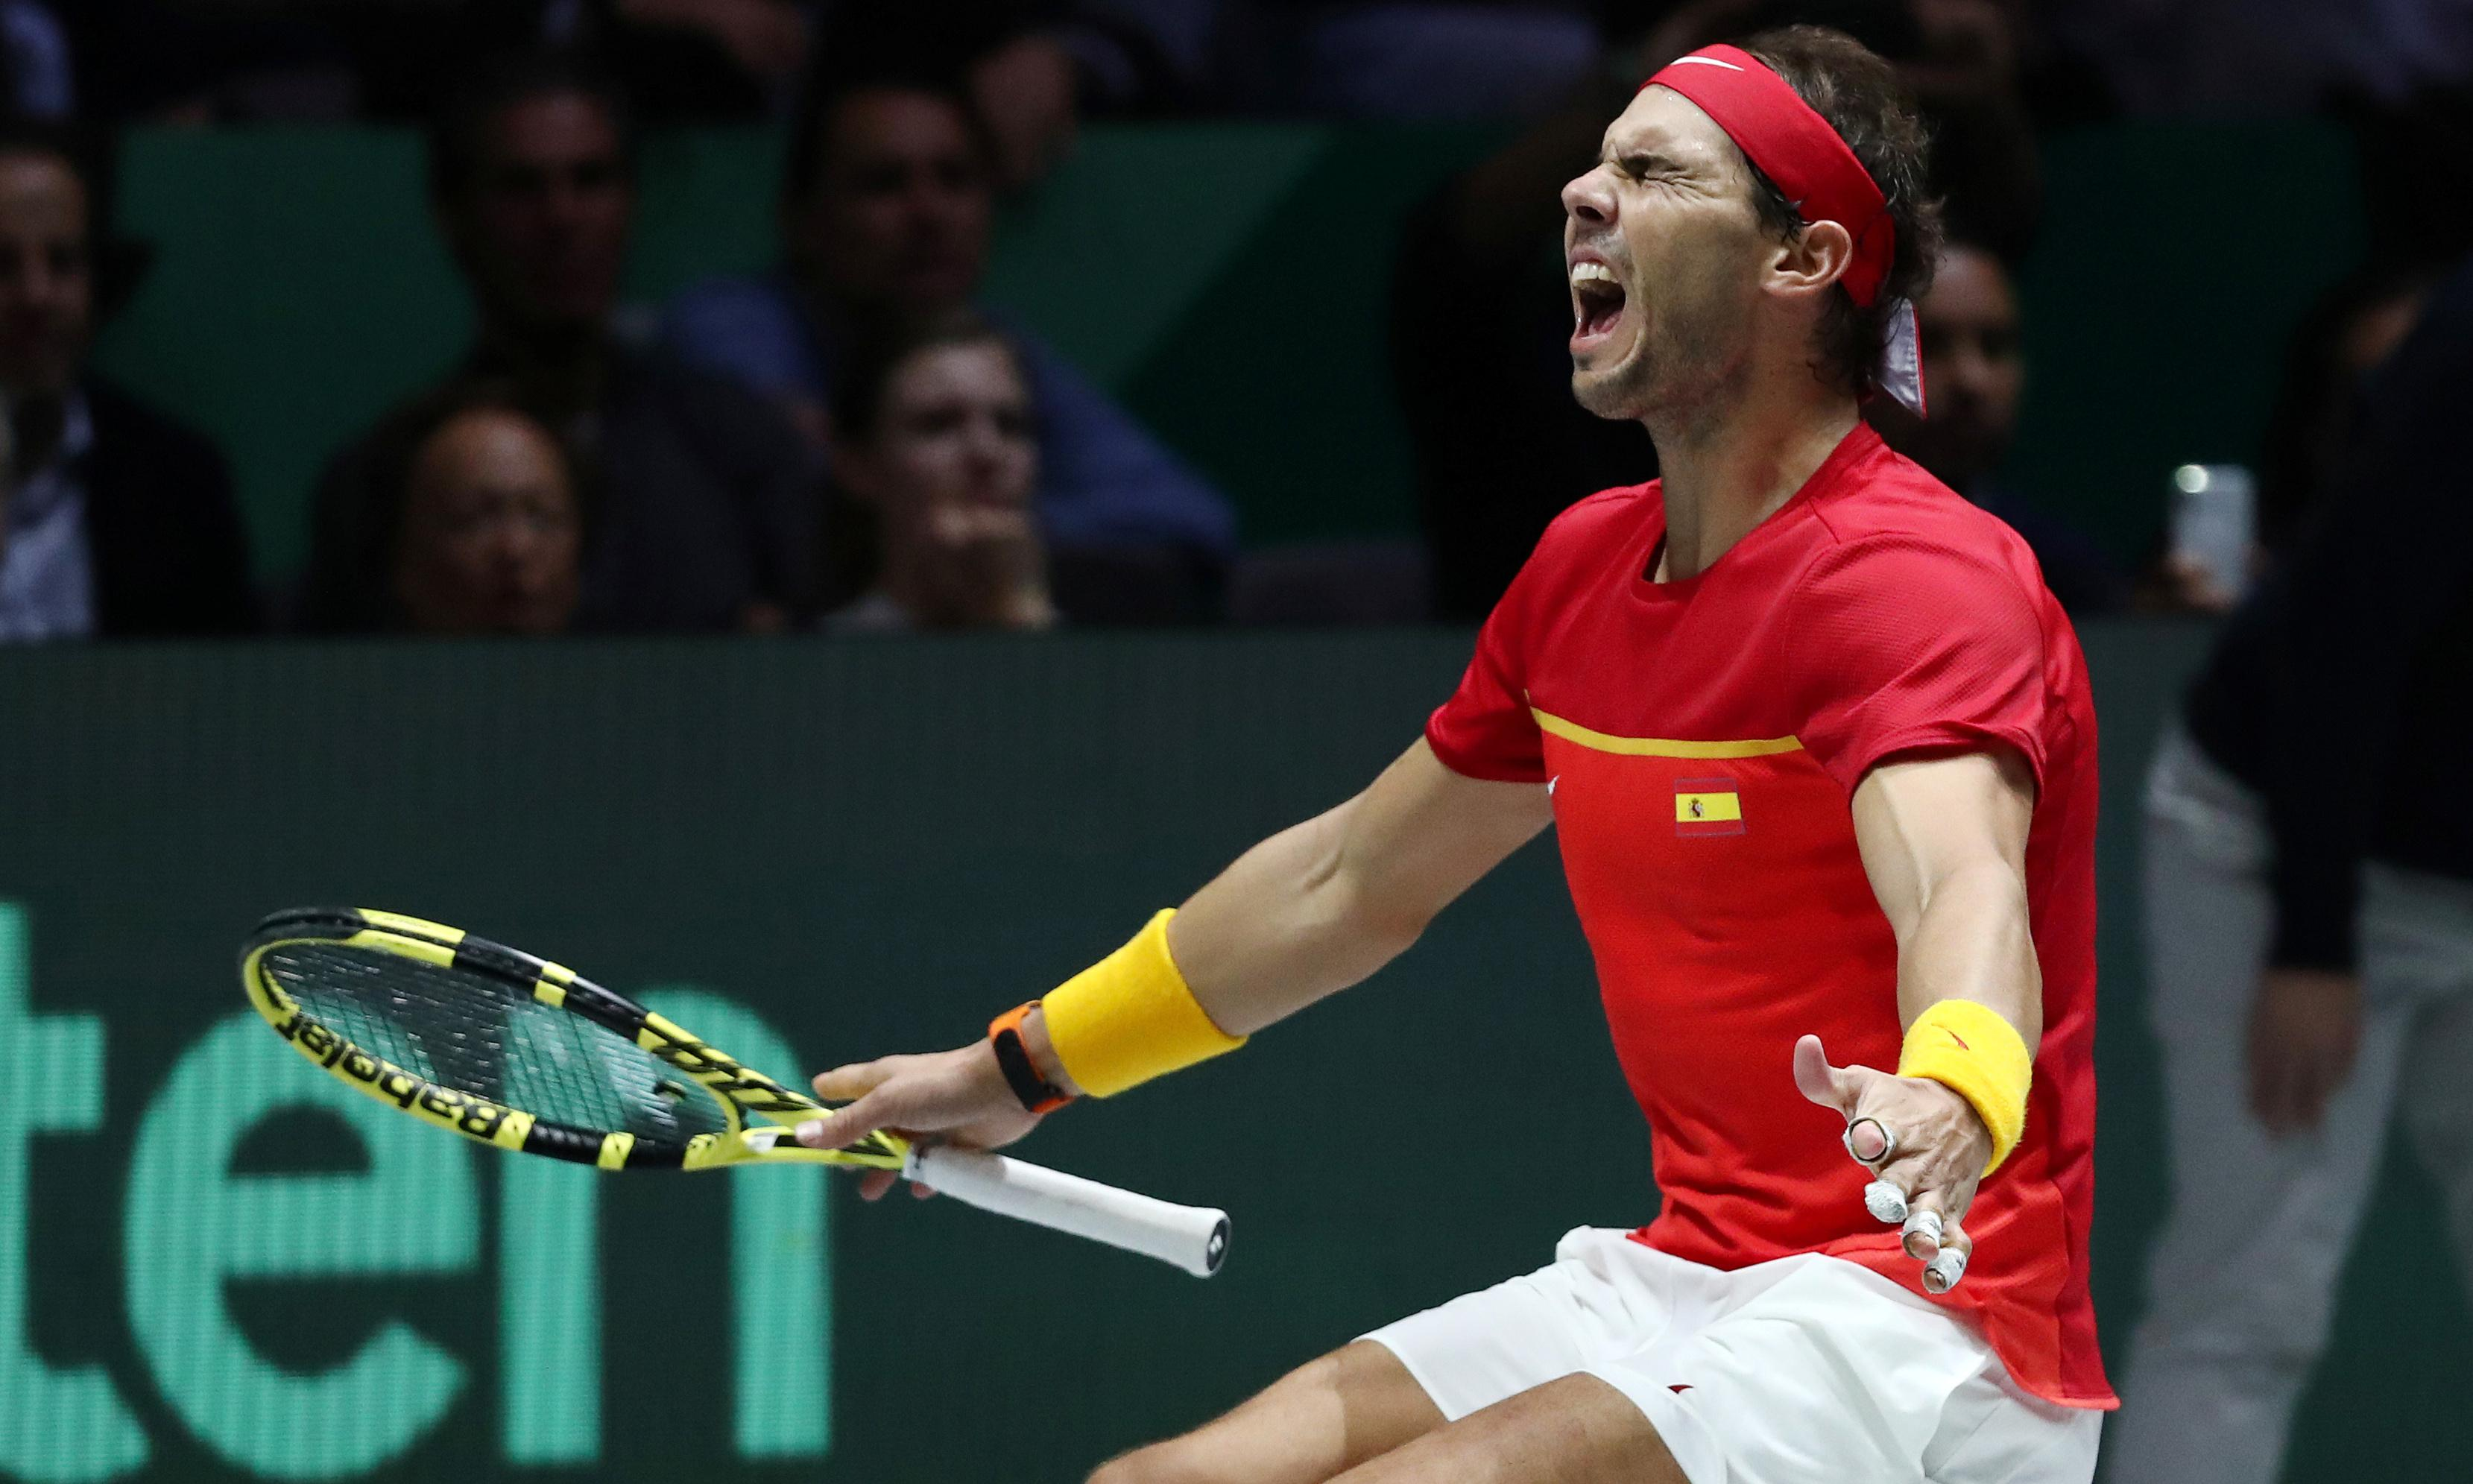 Spain see off Canada to seal Davis Cup win and delight home fans